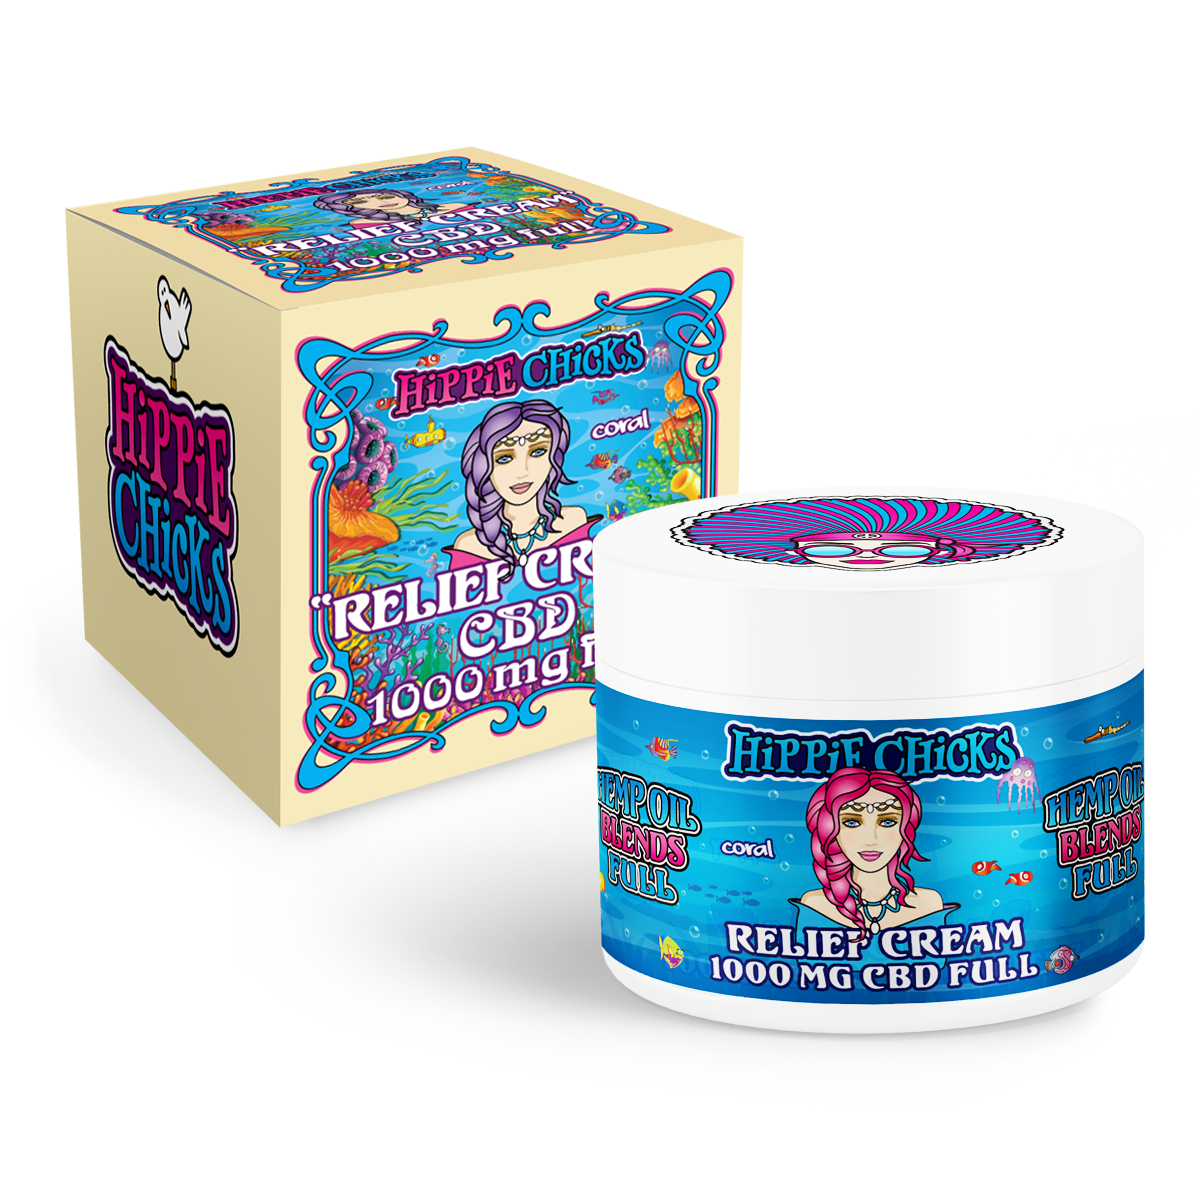 hippie-chicks-pain-relief-cream-1000mg-CBD-full-spectrum-oil